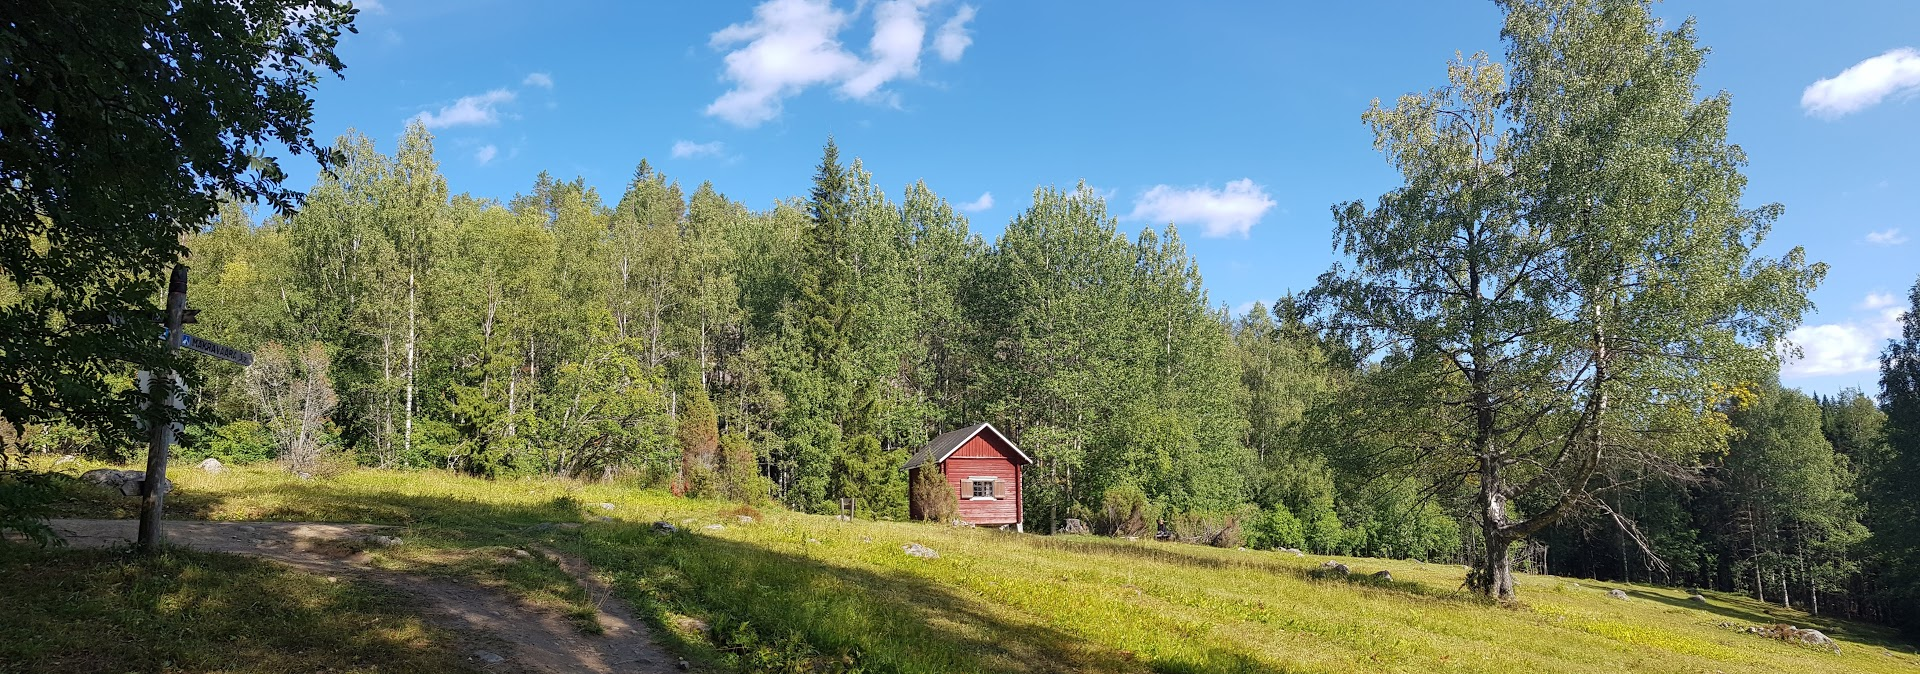 A grassland in the middle of a forrest with a small red building at the edge of the forest.